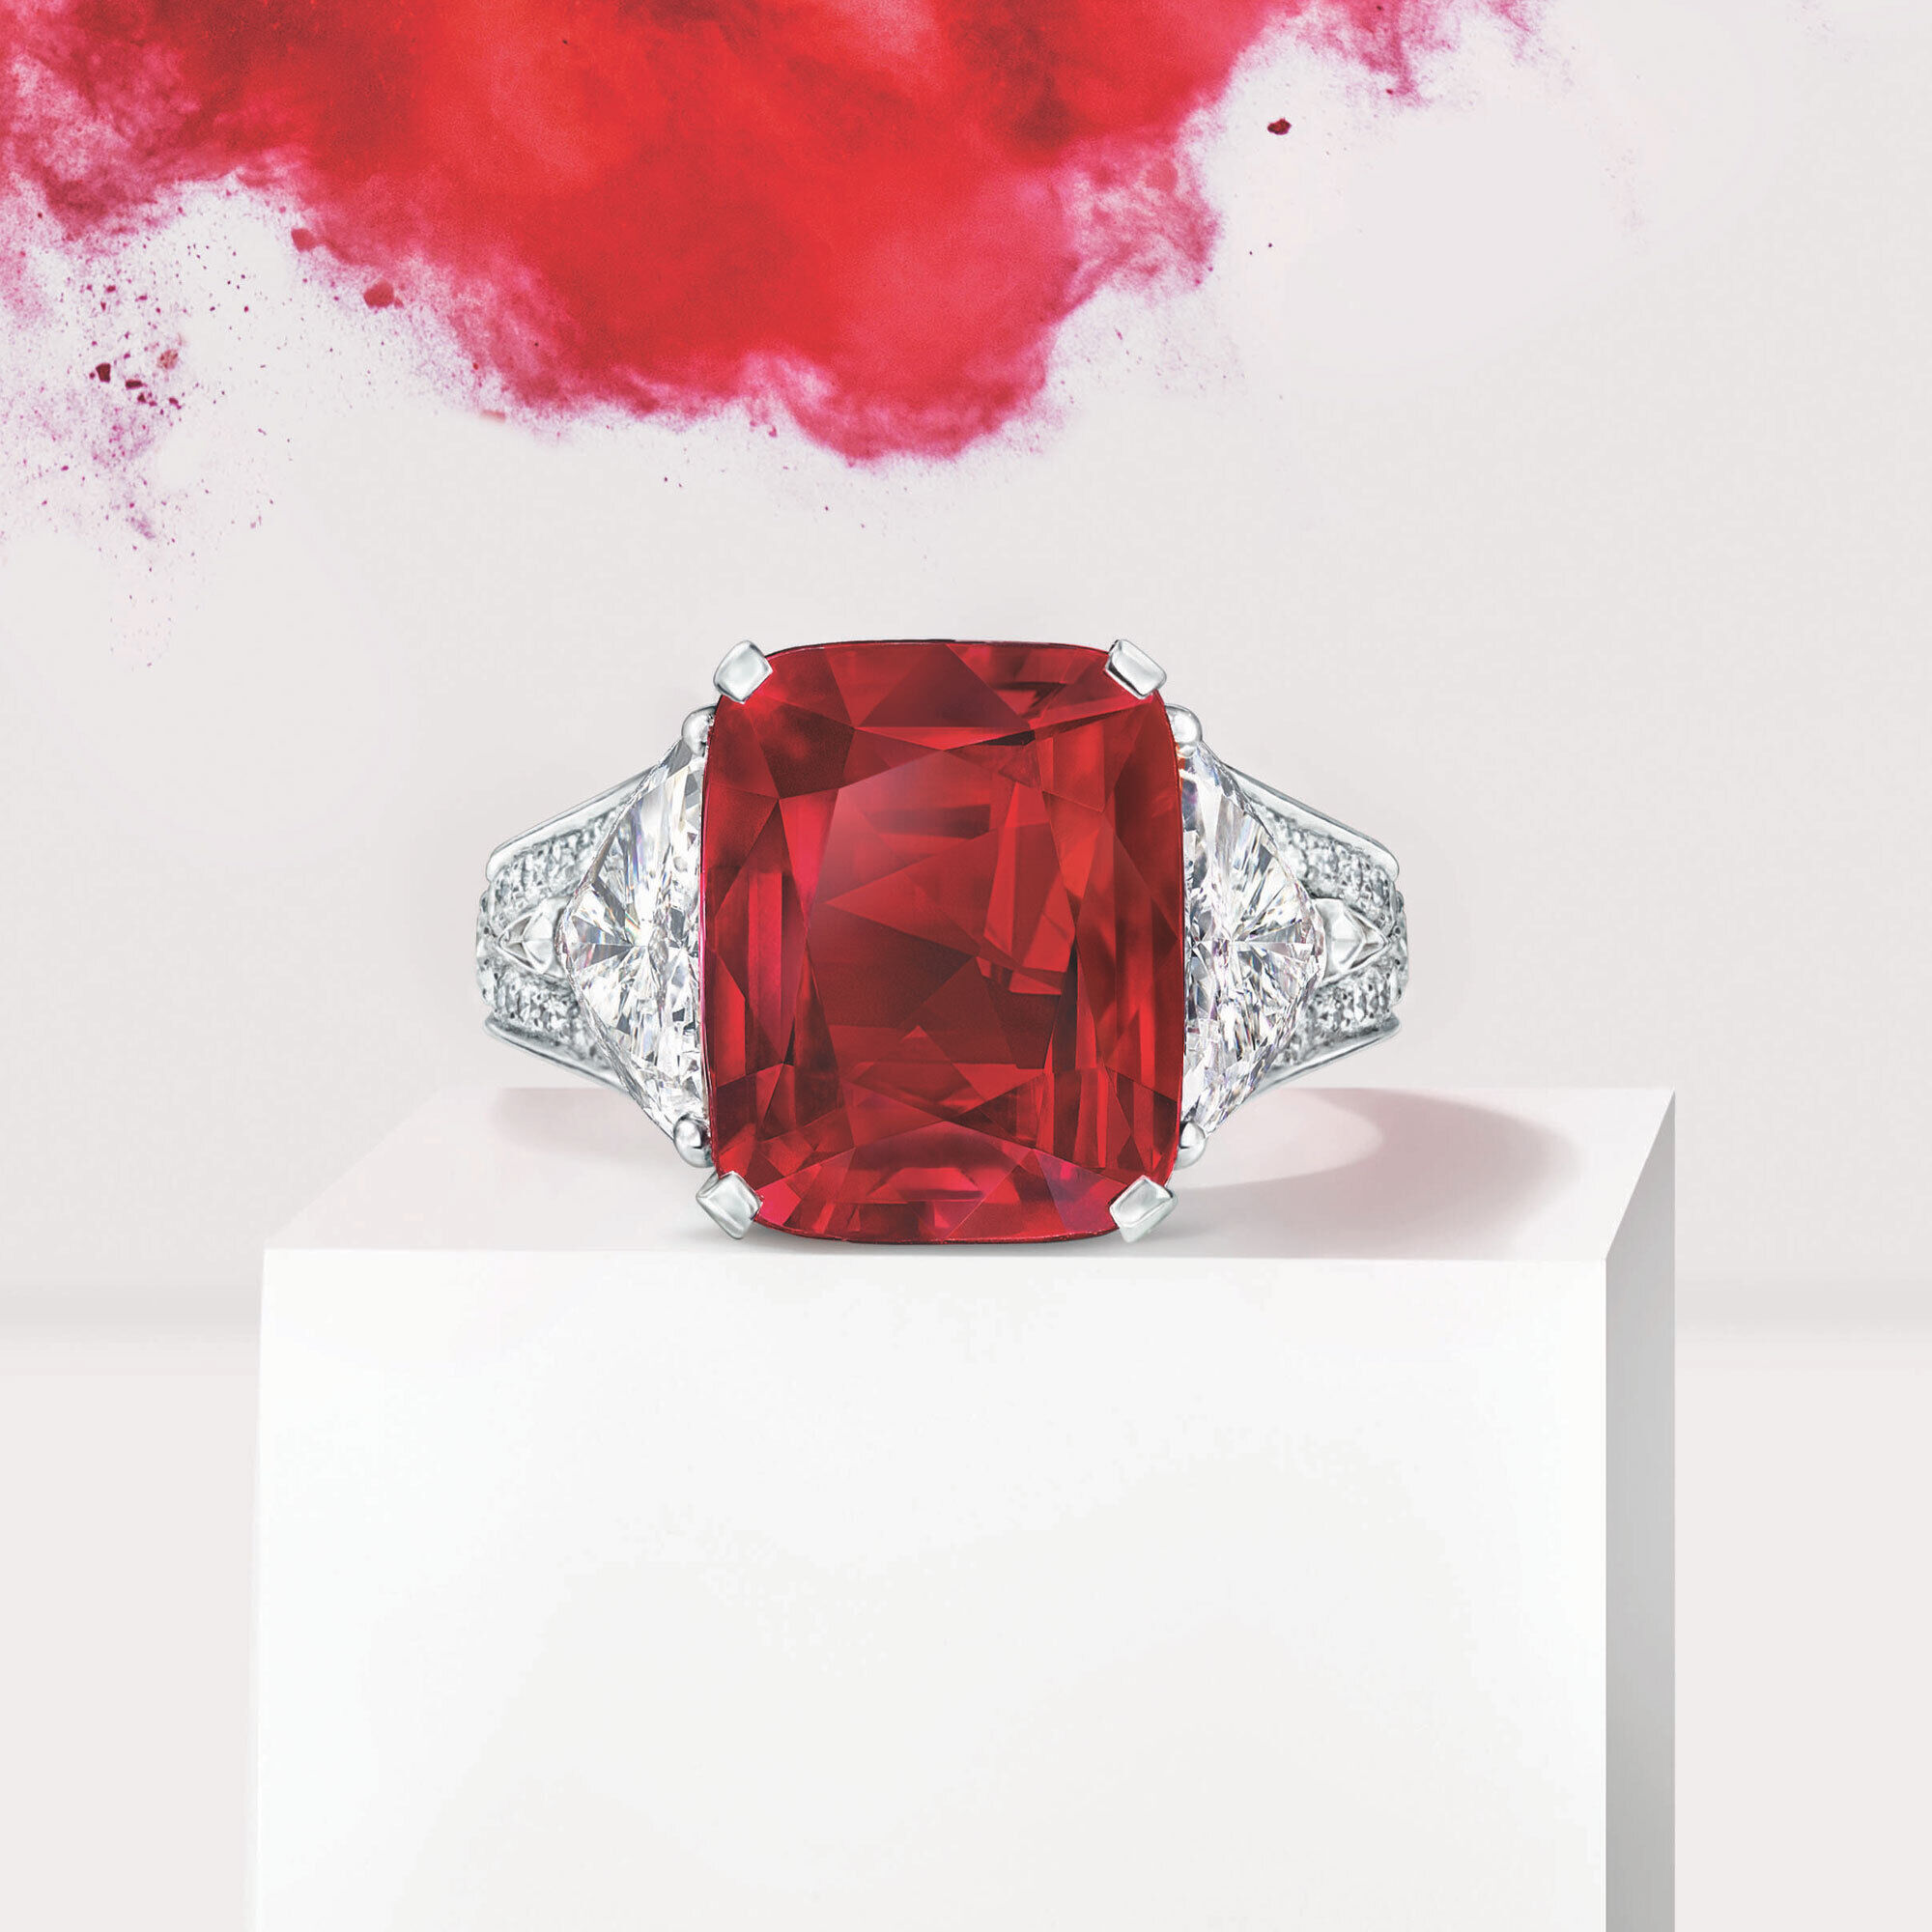 A Graff ruby and diamond high jewellery ring with explosion effect